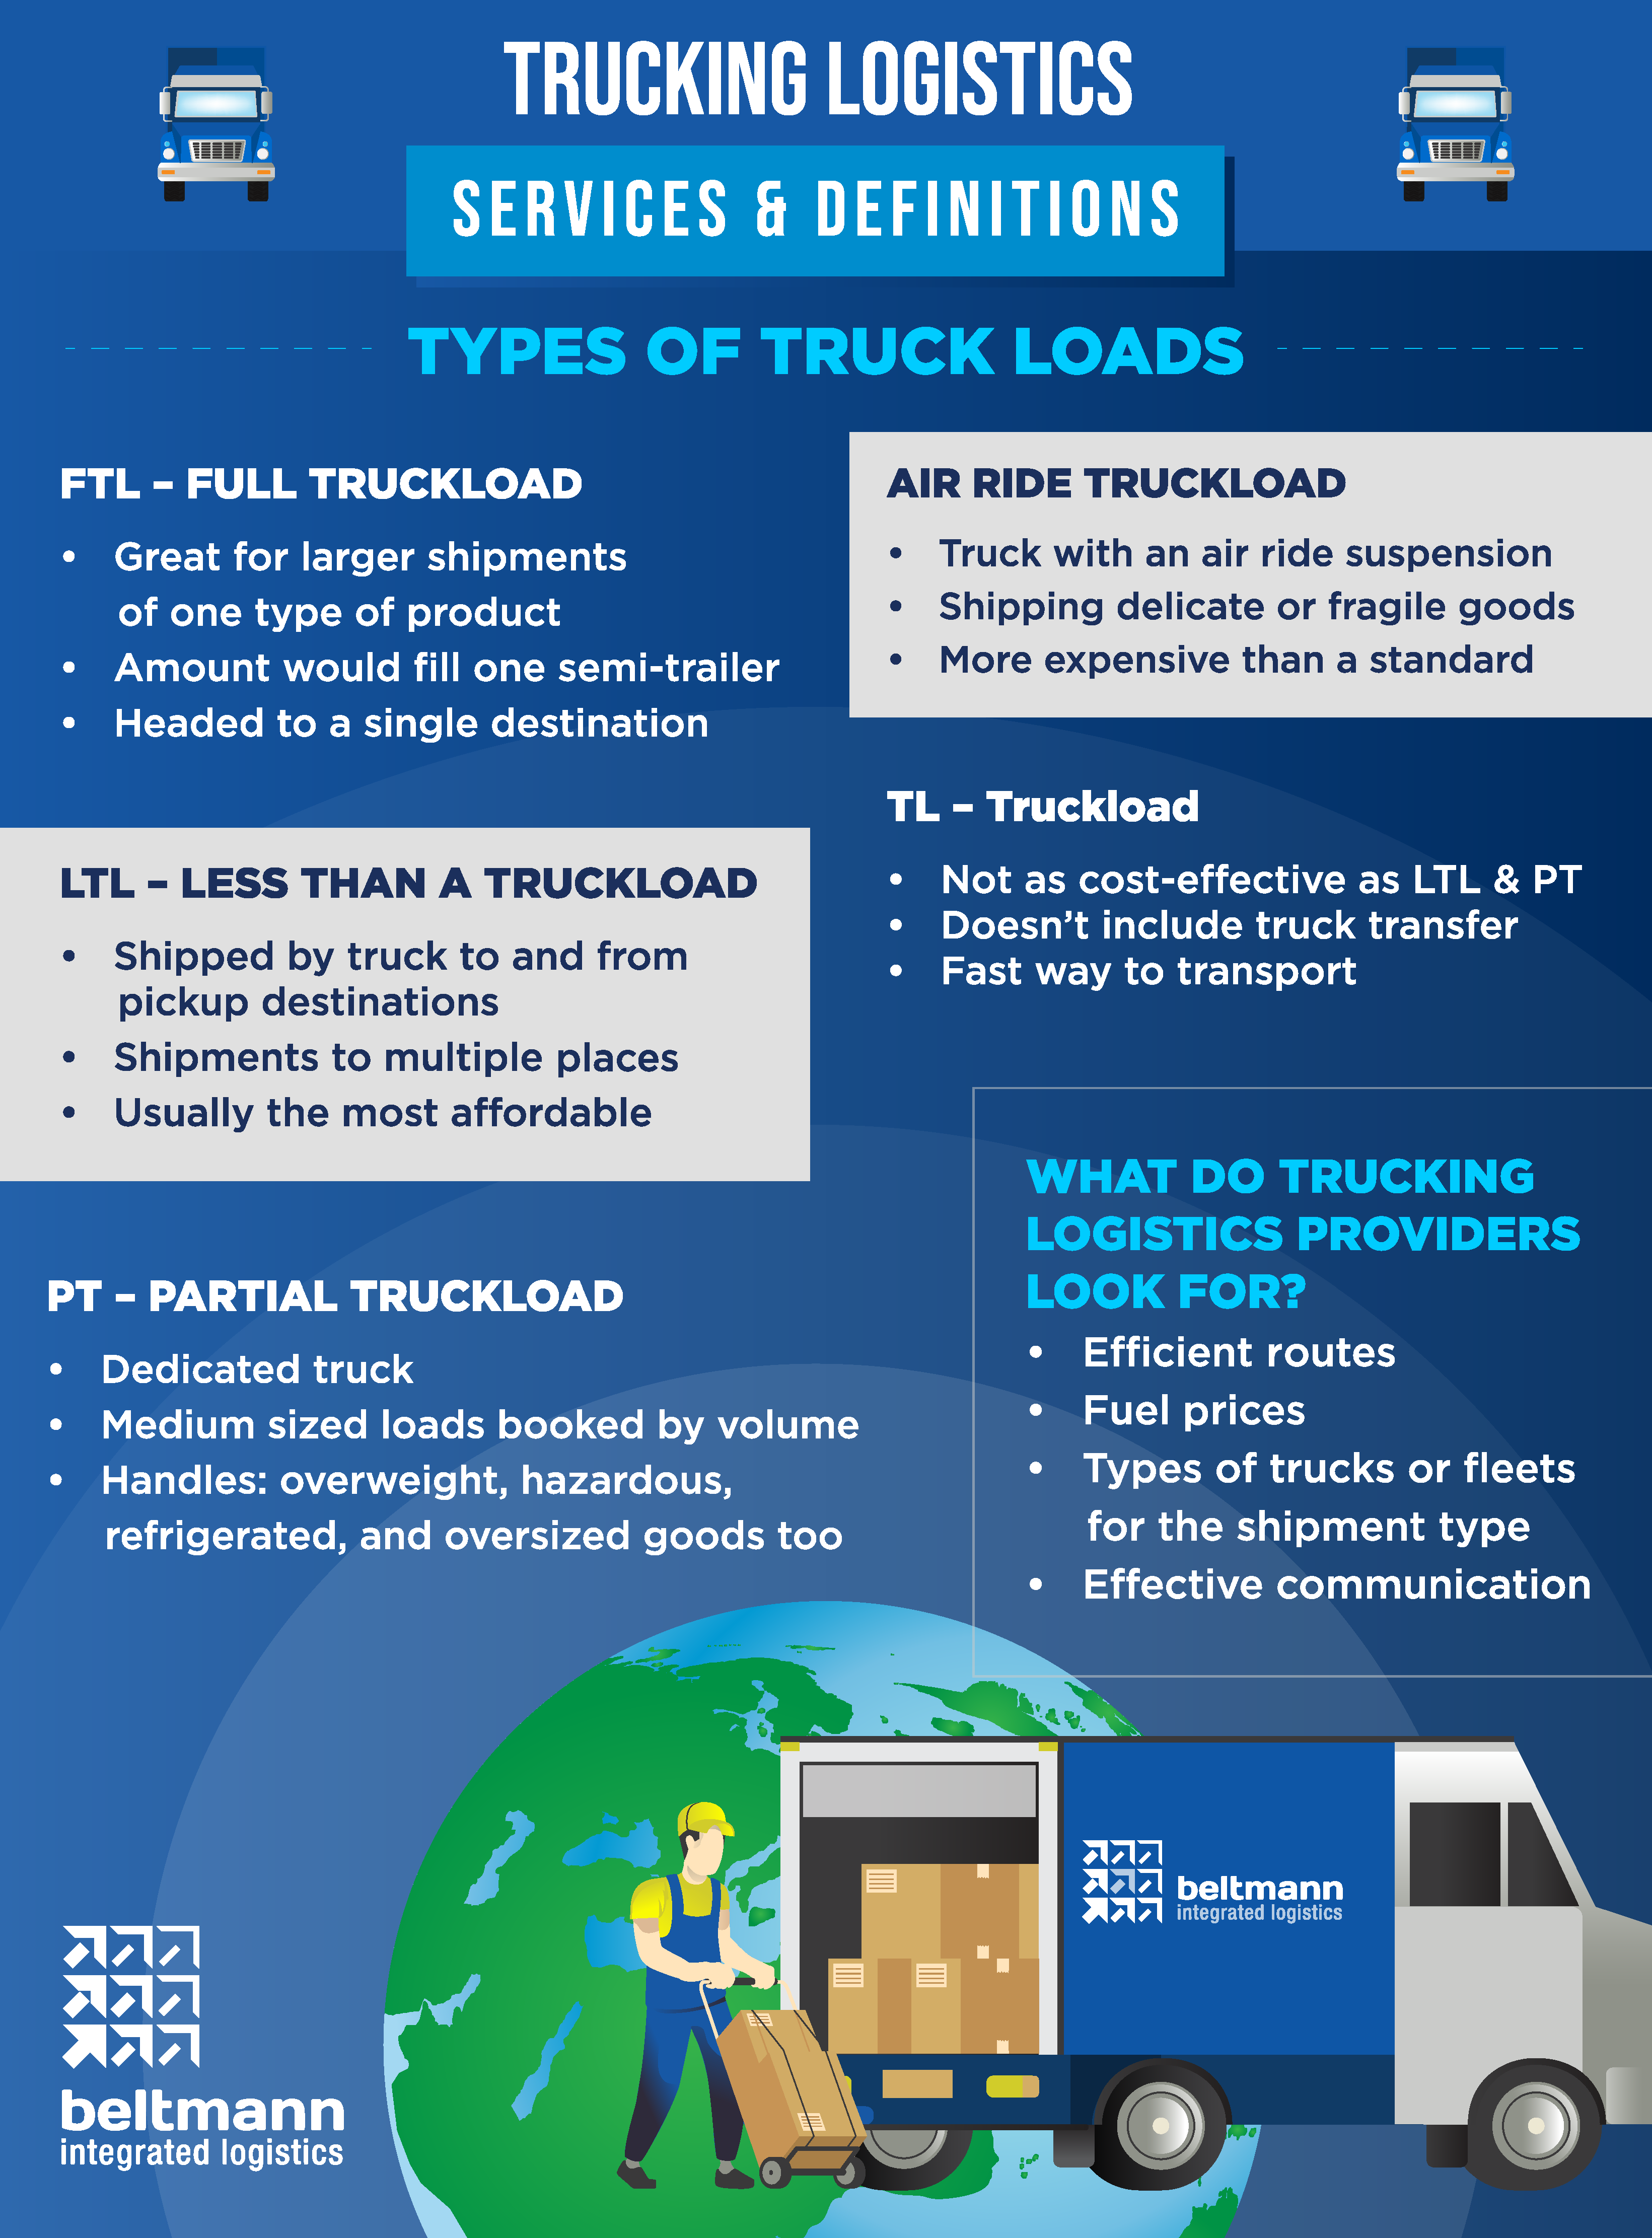 Trucking Logistics Services & Definitions